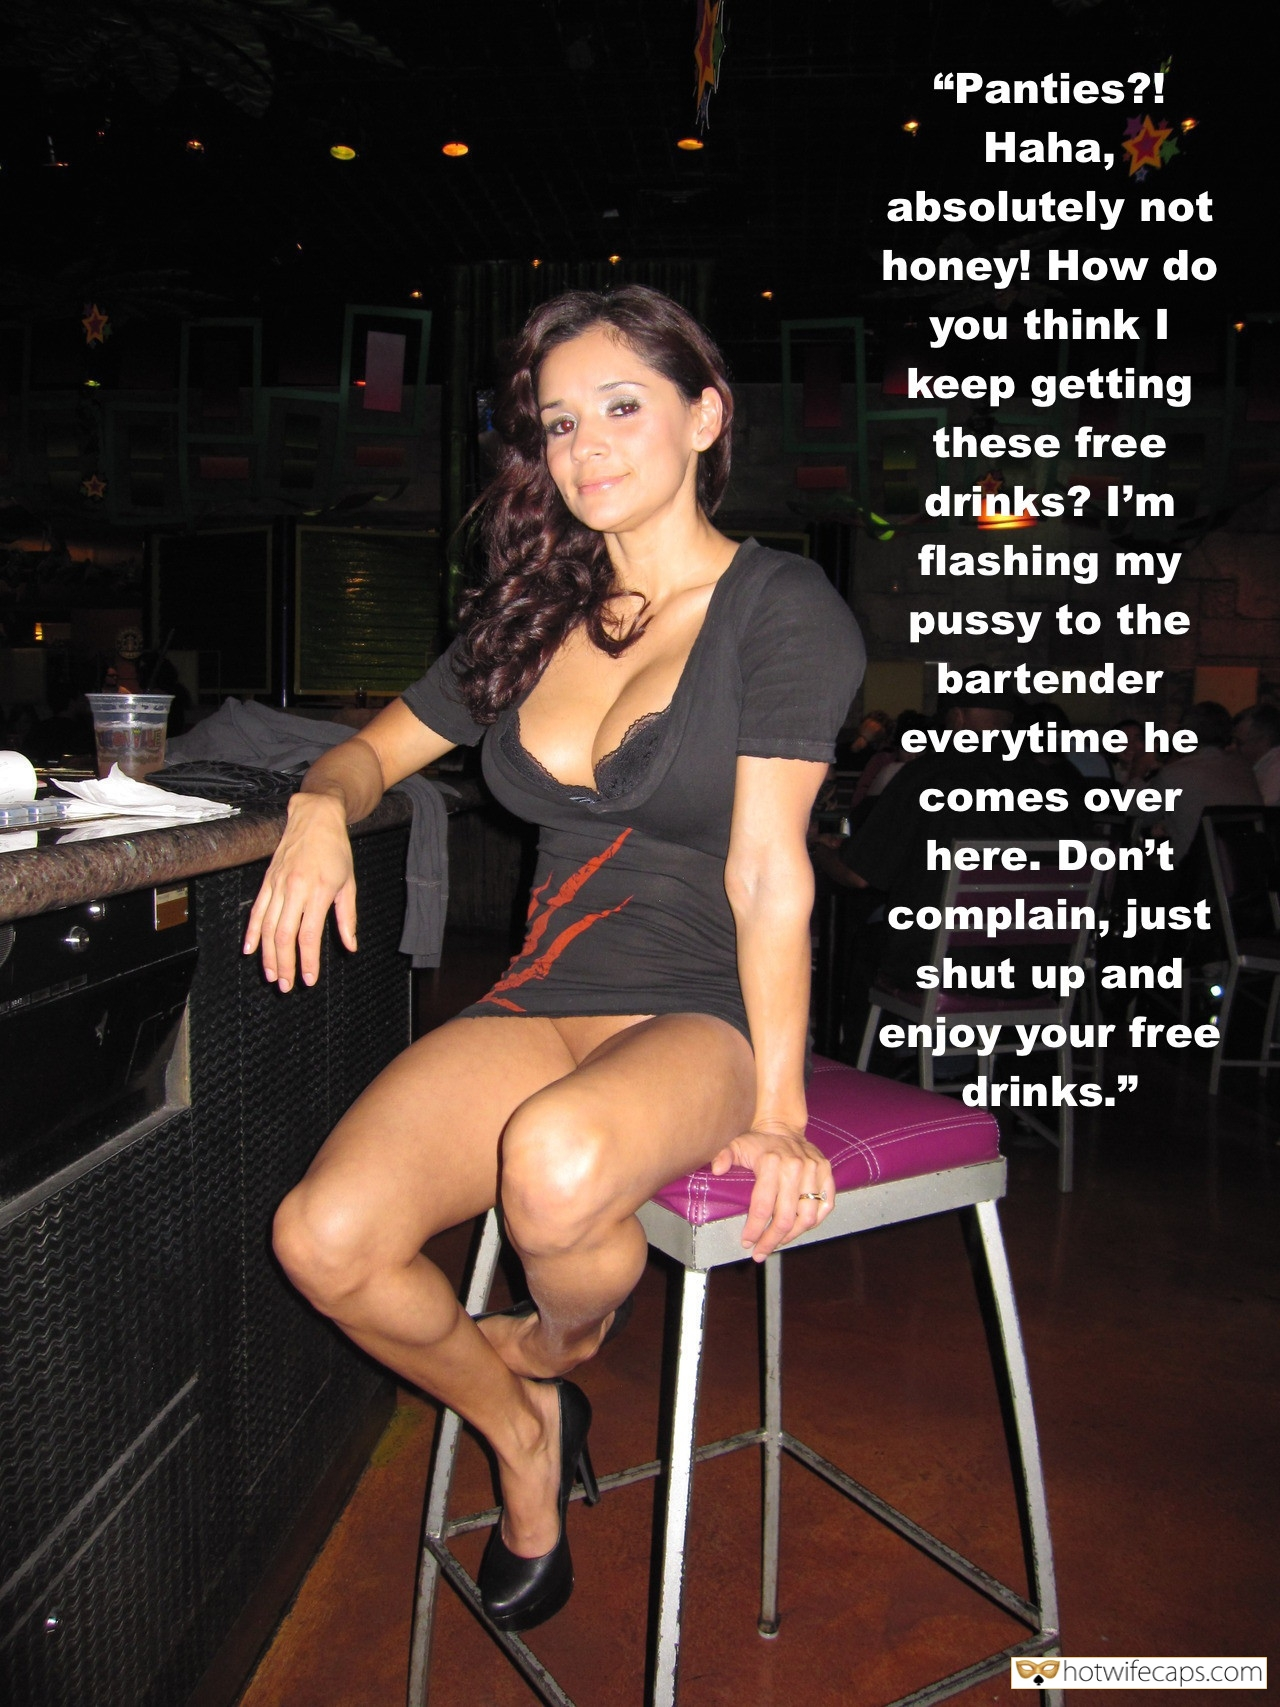 "Sexy Memes Public No Panties Flashing Dirty Talk Bottomless hotwife caption: ""Panties?! Haha, absolutely not honey! How do you think I keep getting these free drinks? I'm flashing my pussy to the bartender every time he comes over here. Don't complain, just shut up and enjoy your free drinks."" Dark Haired..."